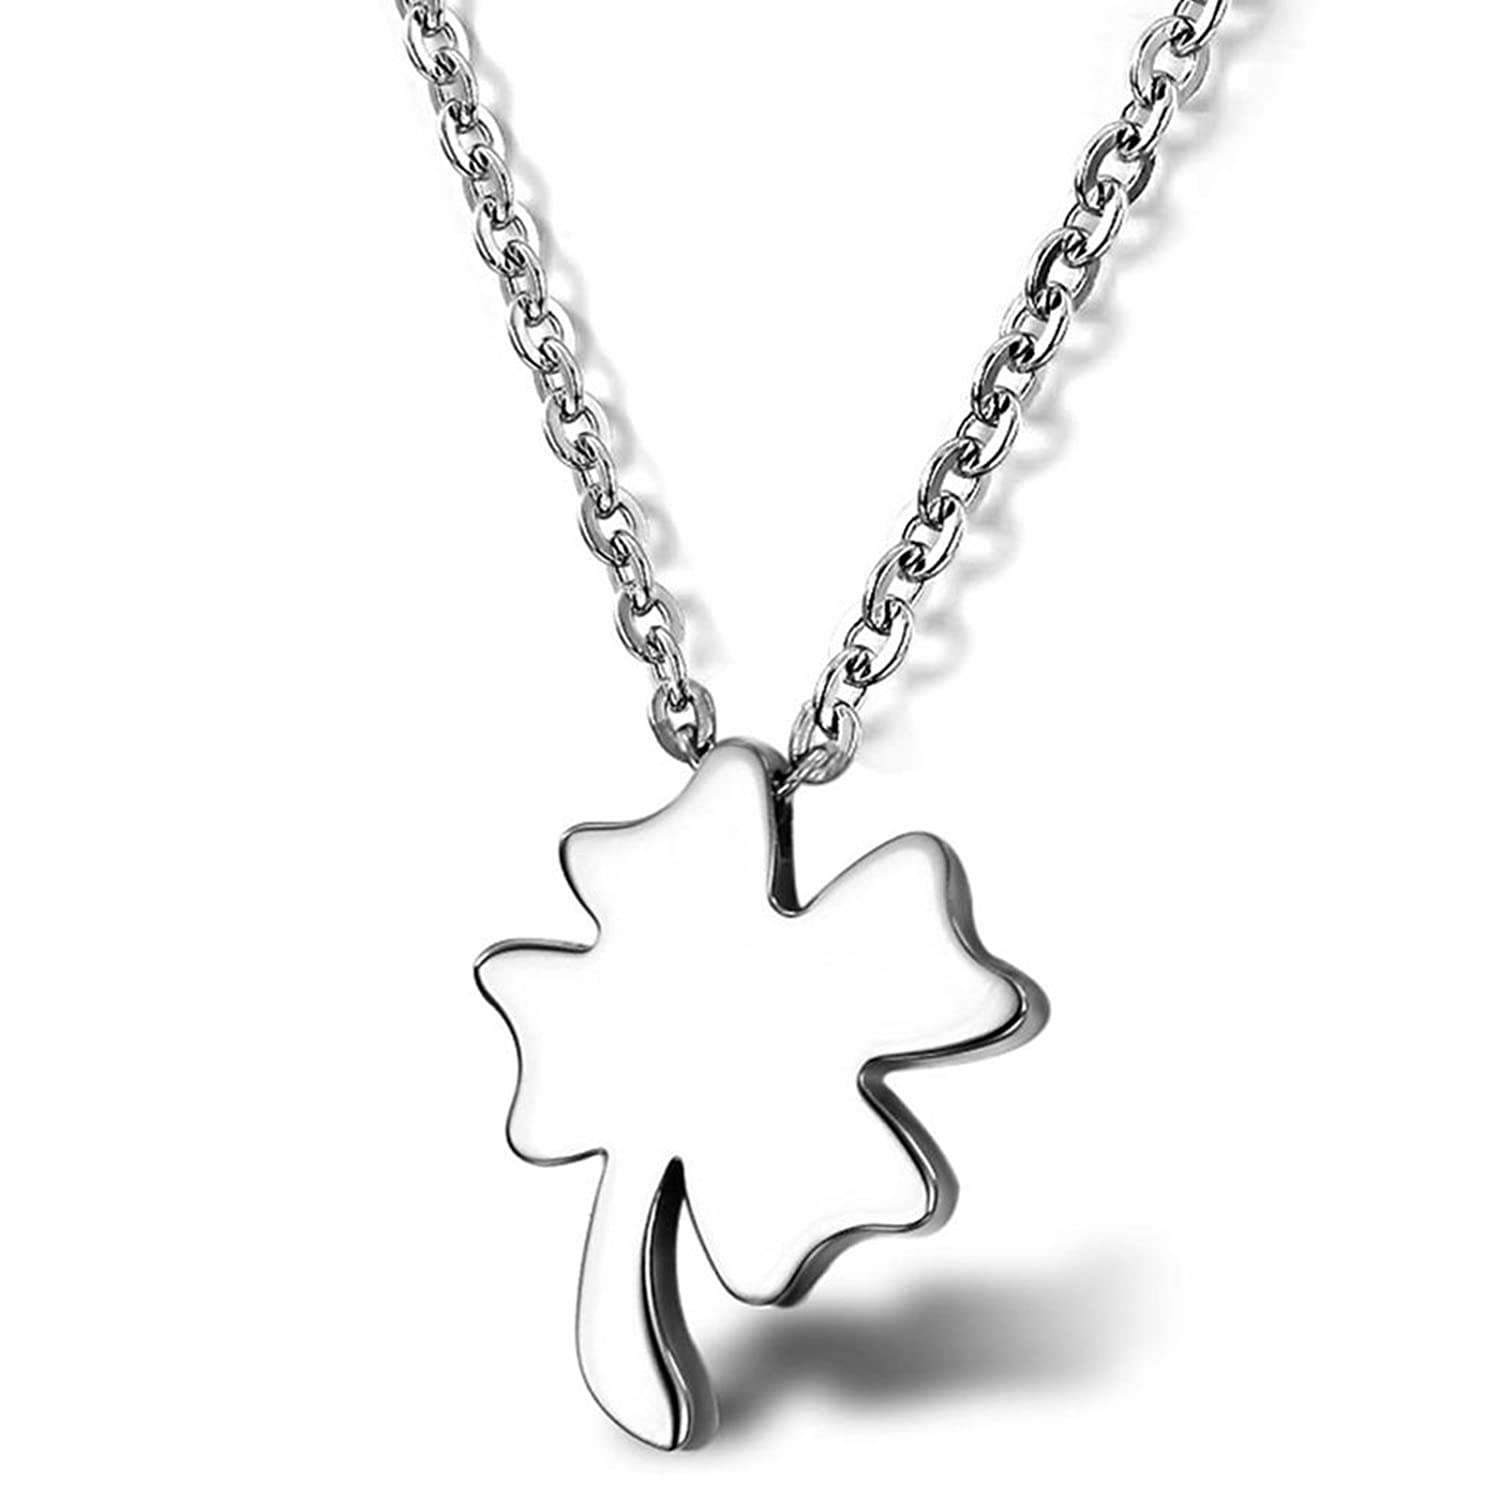 Aokarry LUCKY Necklace Stainless Steel Plain Four Leaves Clover Pendant Silver Rolo Chain AOK01GL151